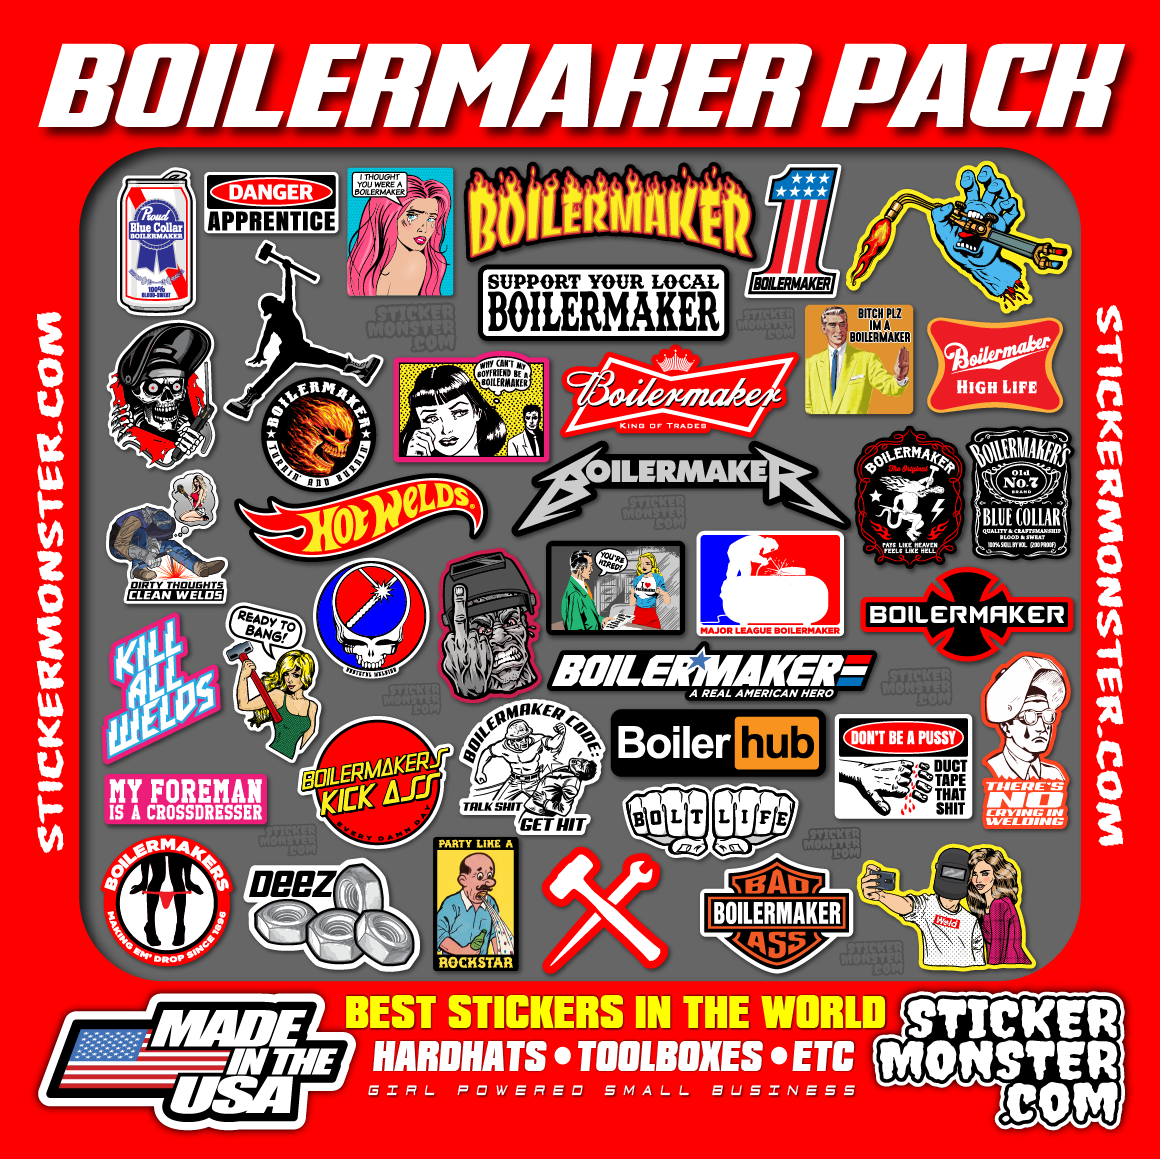 Home Decoration - BOILERMAKER PACK (40) Welder Stickers HardHat Sticker & Decals, Welding Hood